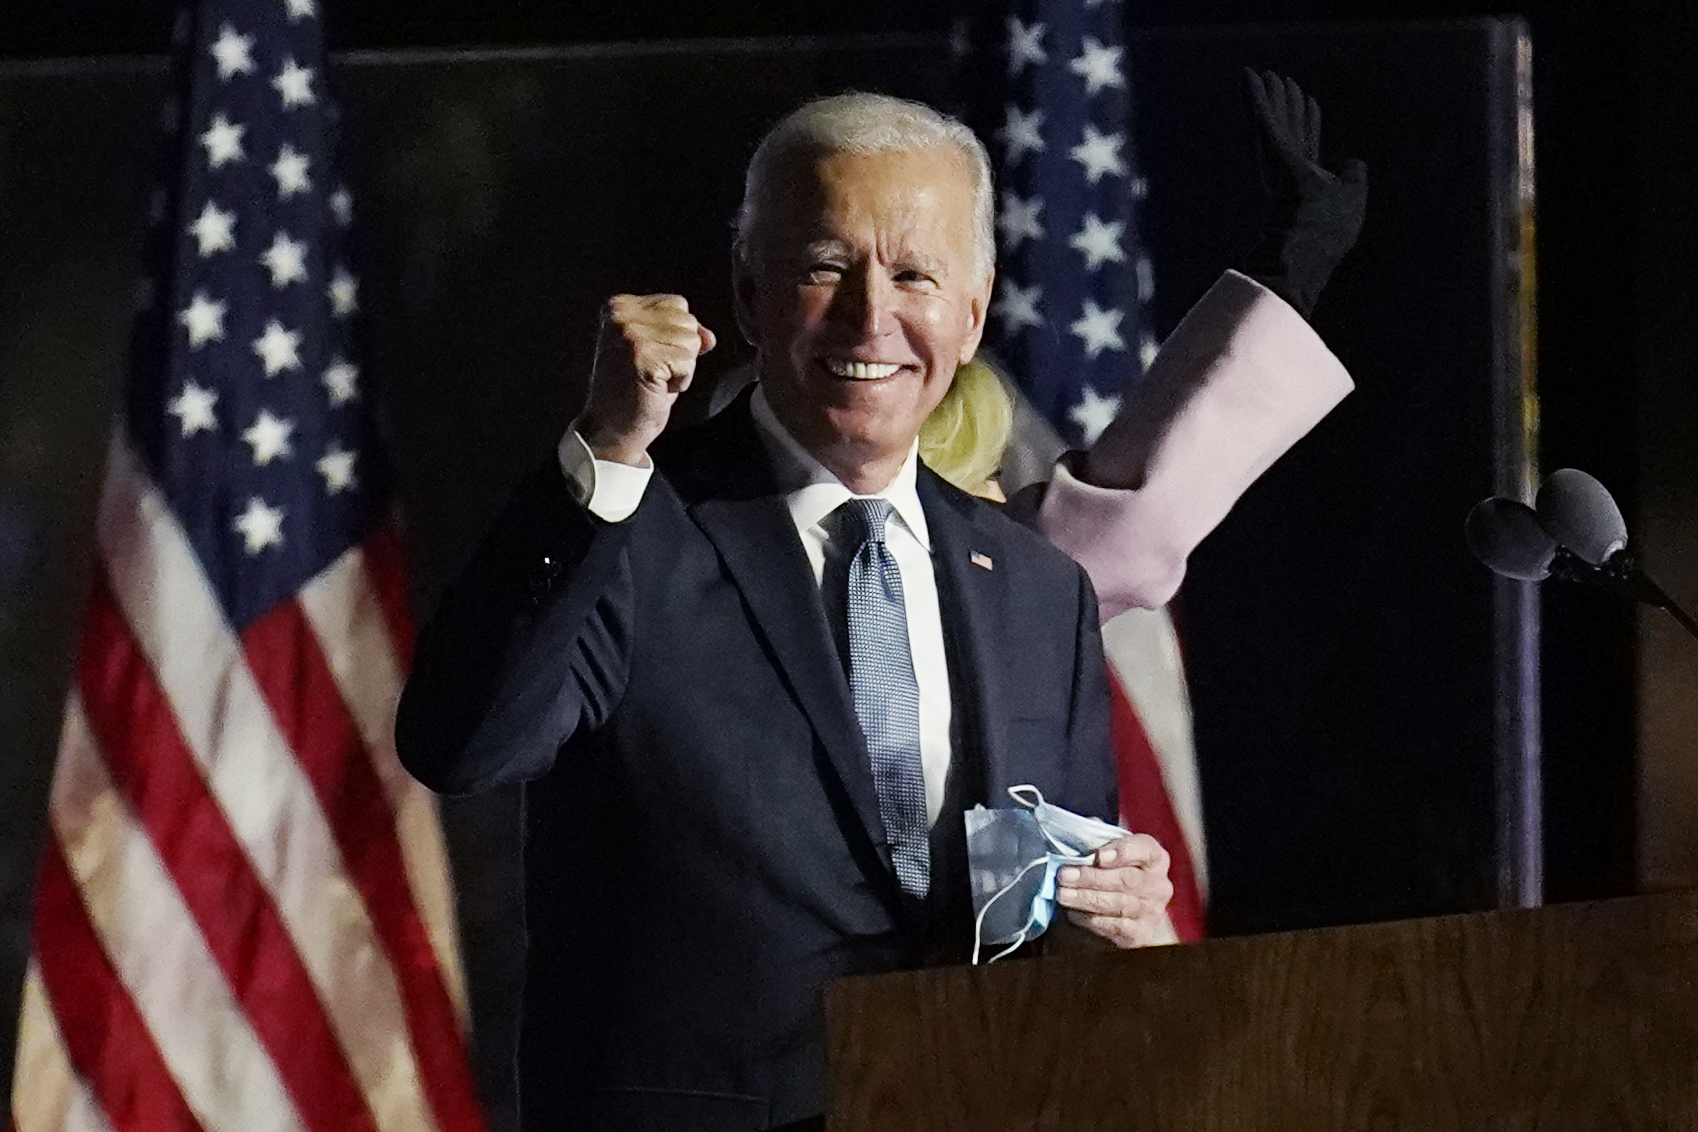 Democratic presidential candidate former Vice President Joe Biden speaks to supporters, early Wednesday, Nov. 4, 2020, in Wilmington, Delaware. (AP Photo/Paul Sancya